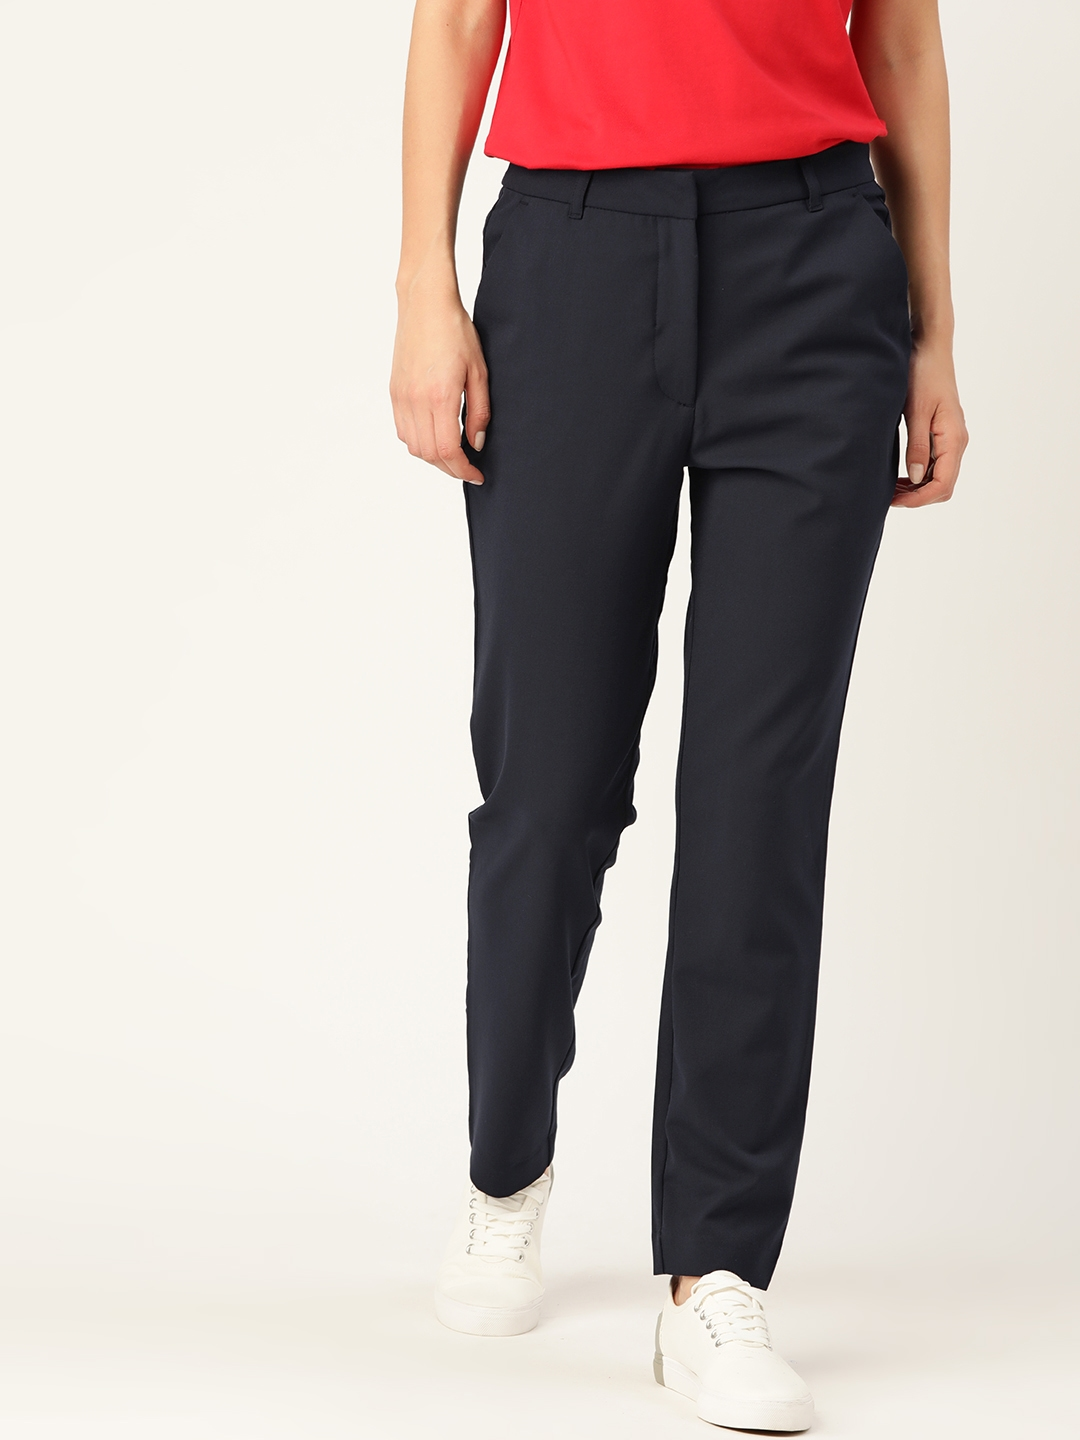 United Colors of Benetton Women Navy Blue Solid Cigarette Trousers